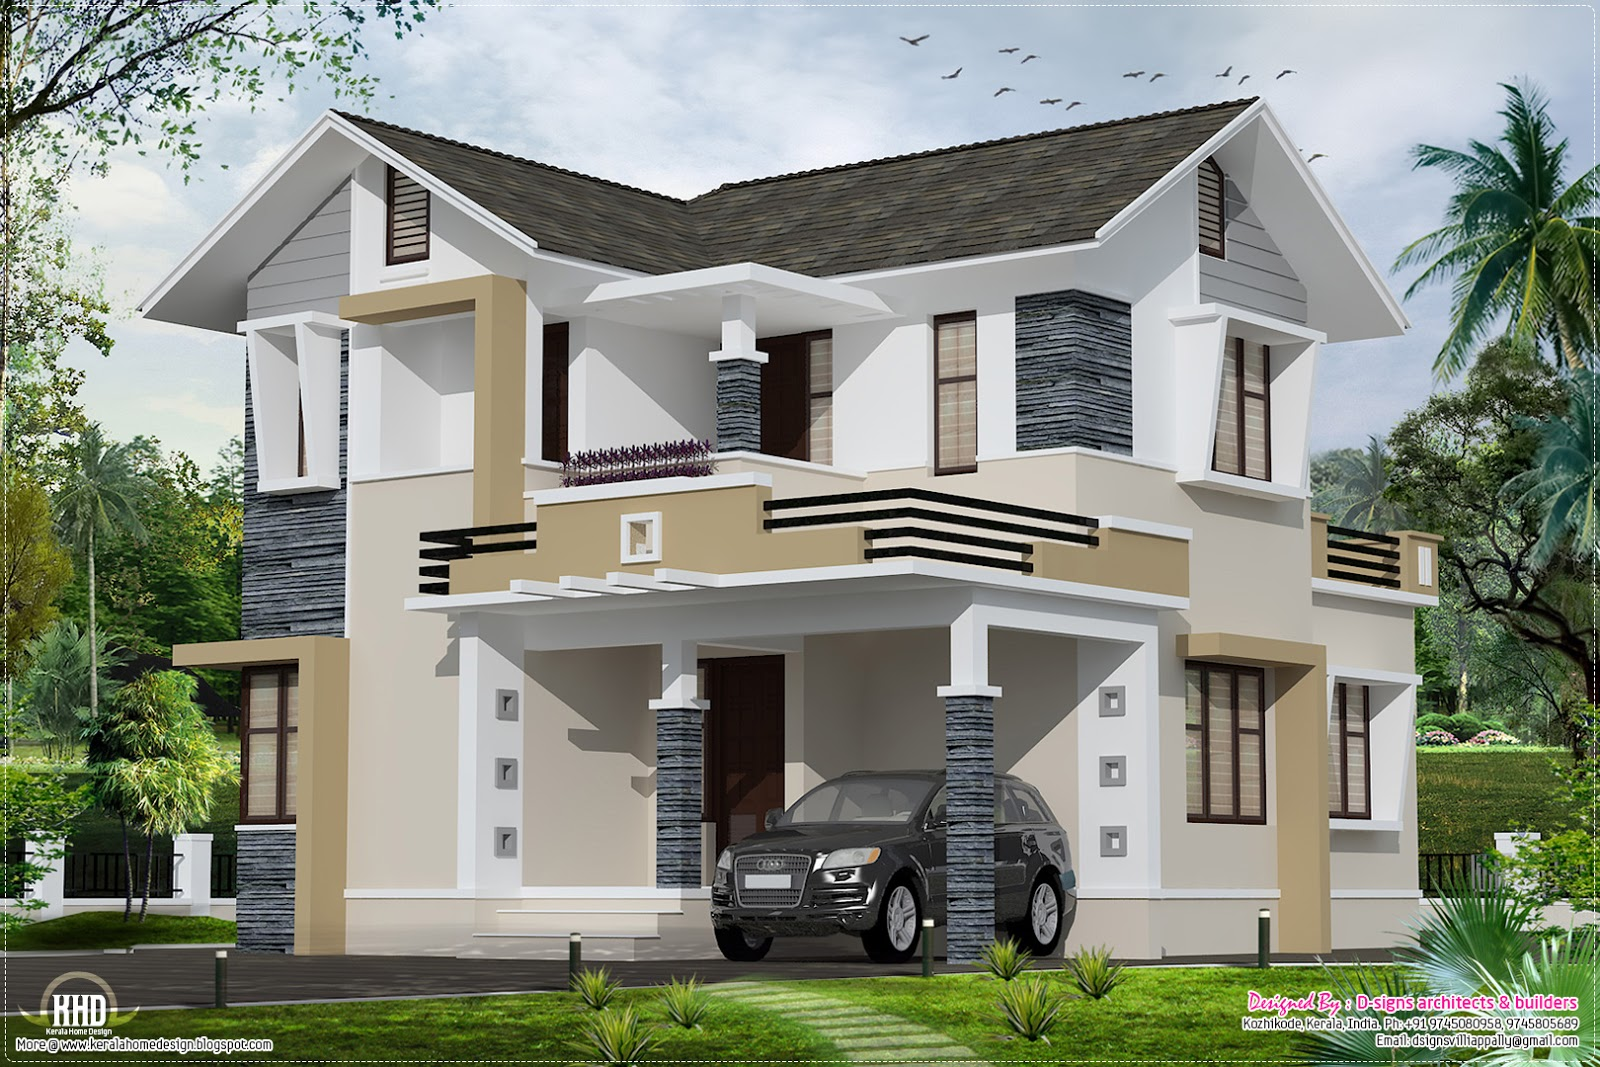 stylish small home design kerala home design floor plans small house plans small house plans small house plans